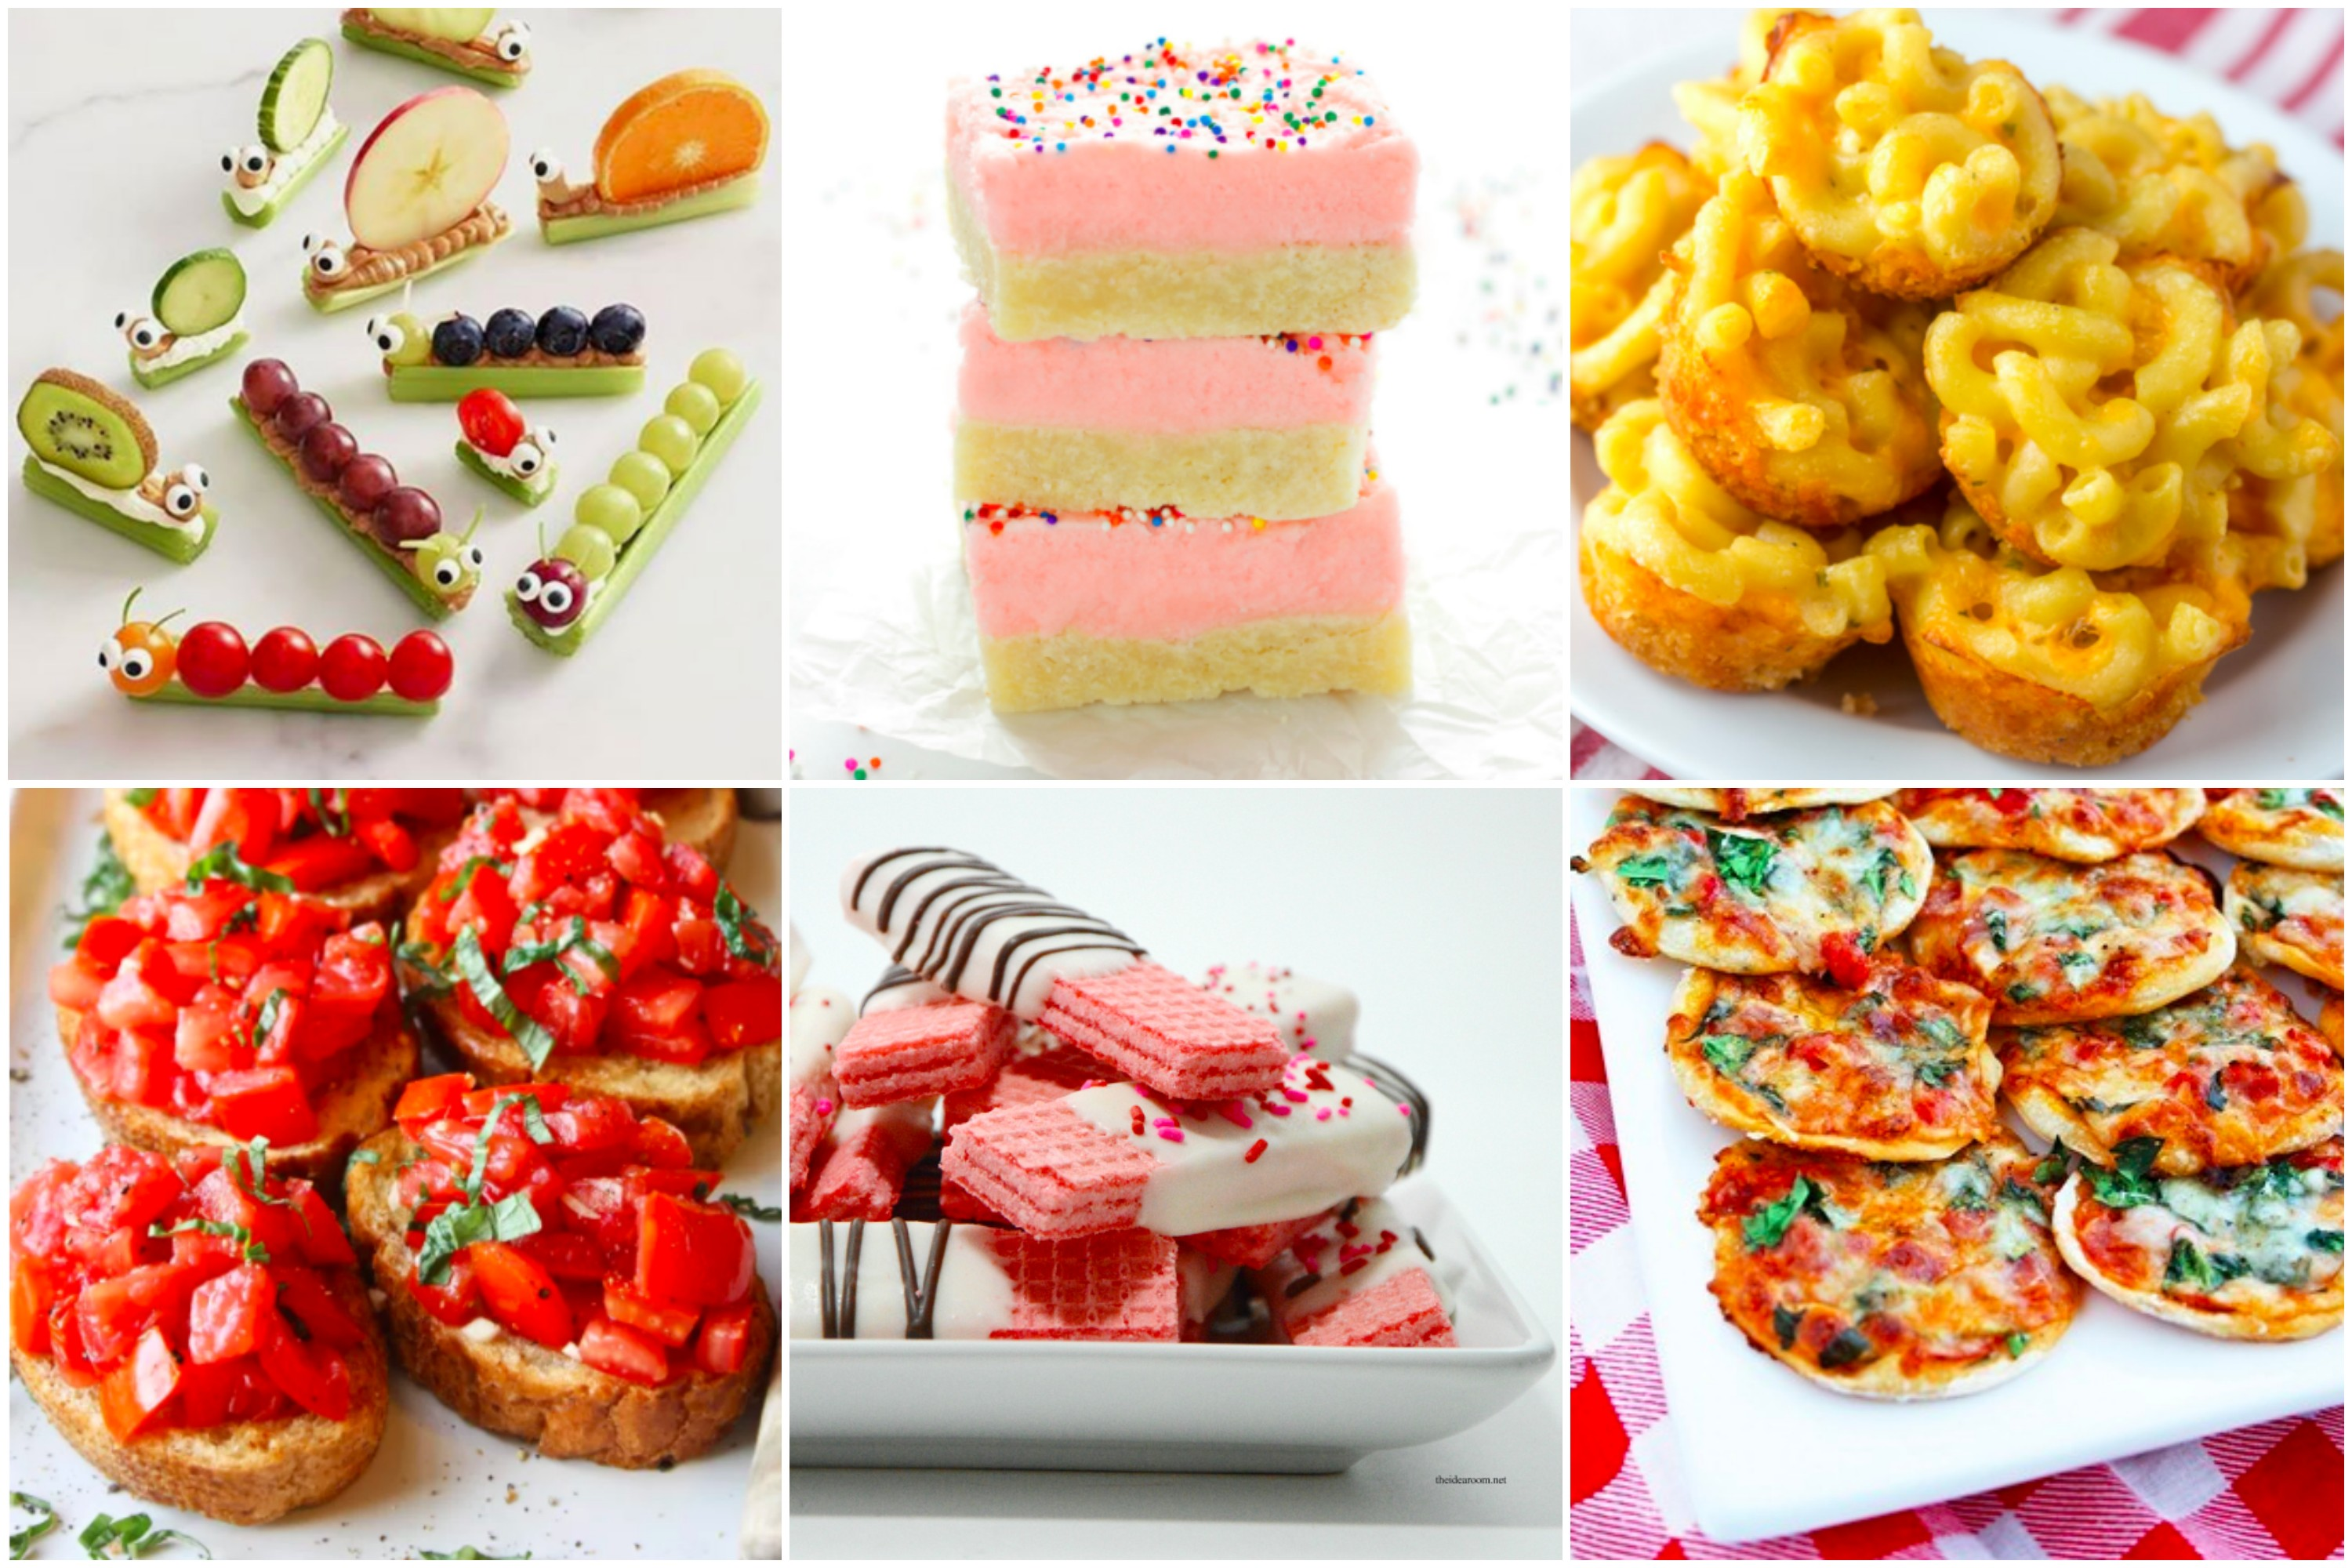 Baby shower food ideas. Mac & cheese bites, mini pizzas, bruschetta and more! Guests are sure to love these yummy treats!